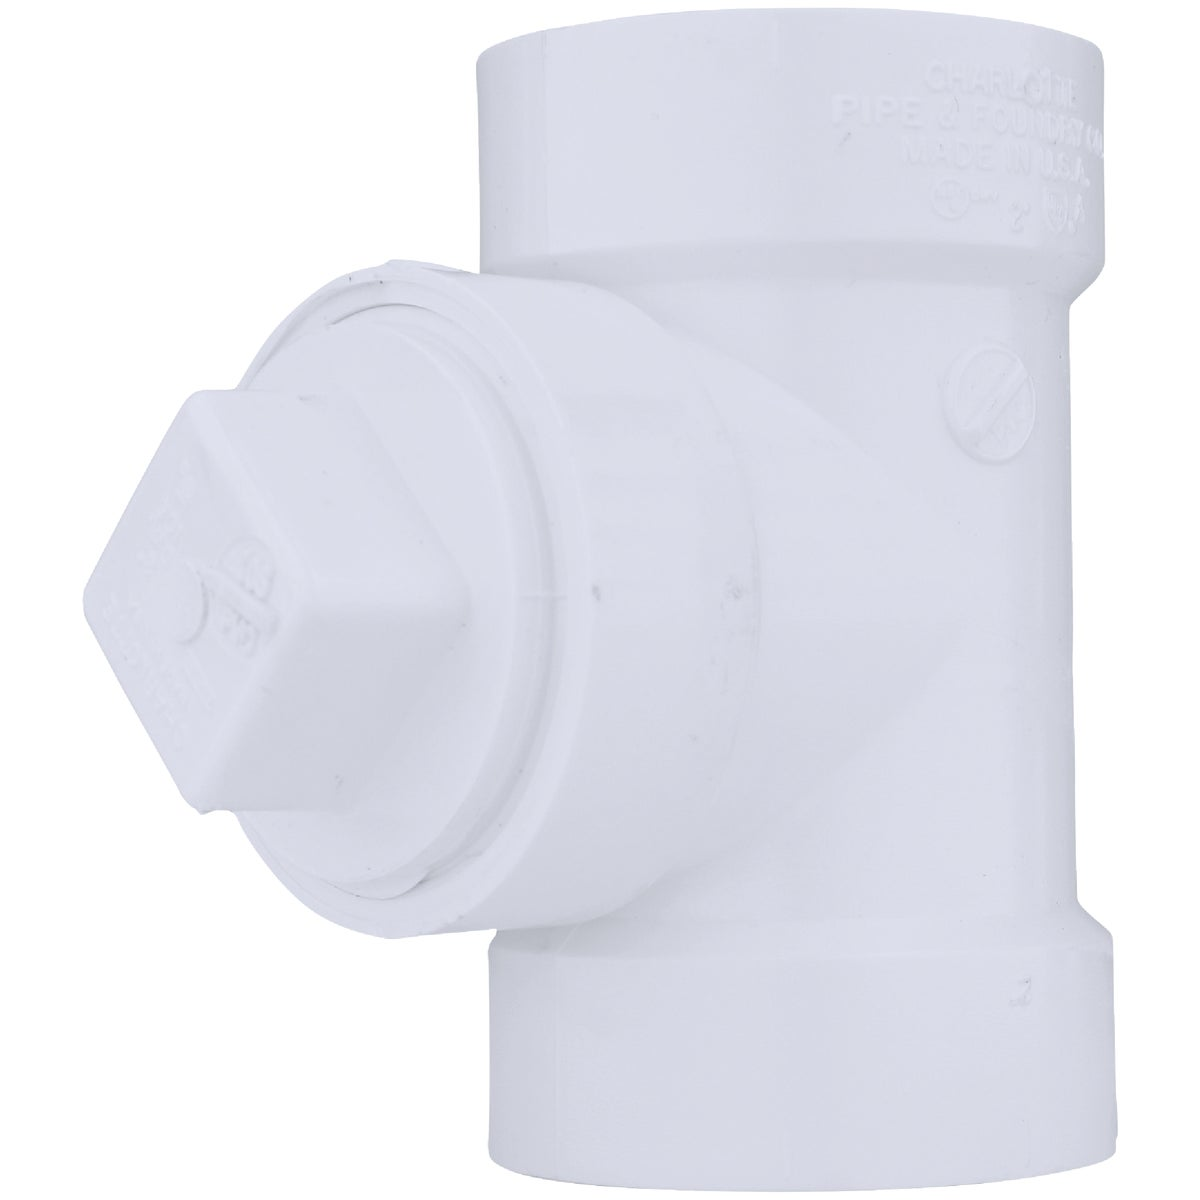 "2"" TEST TEE W/ PLUG - 71320 by Genova Inc  Pvc Dwv"